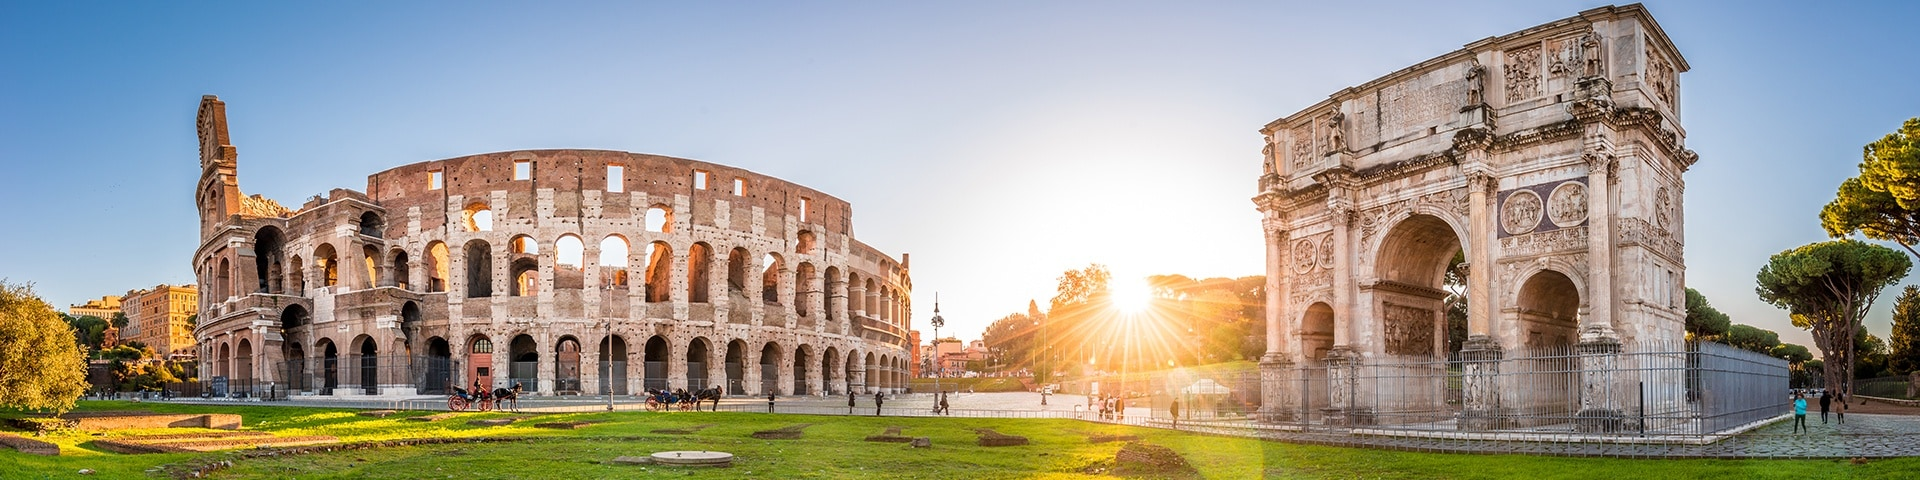 Panorama of Colosseum and Constantine arch in Rome